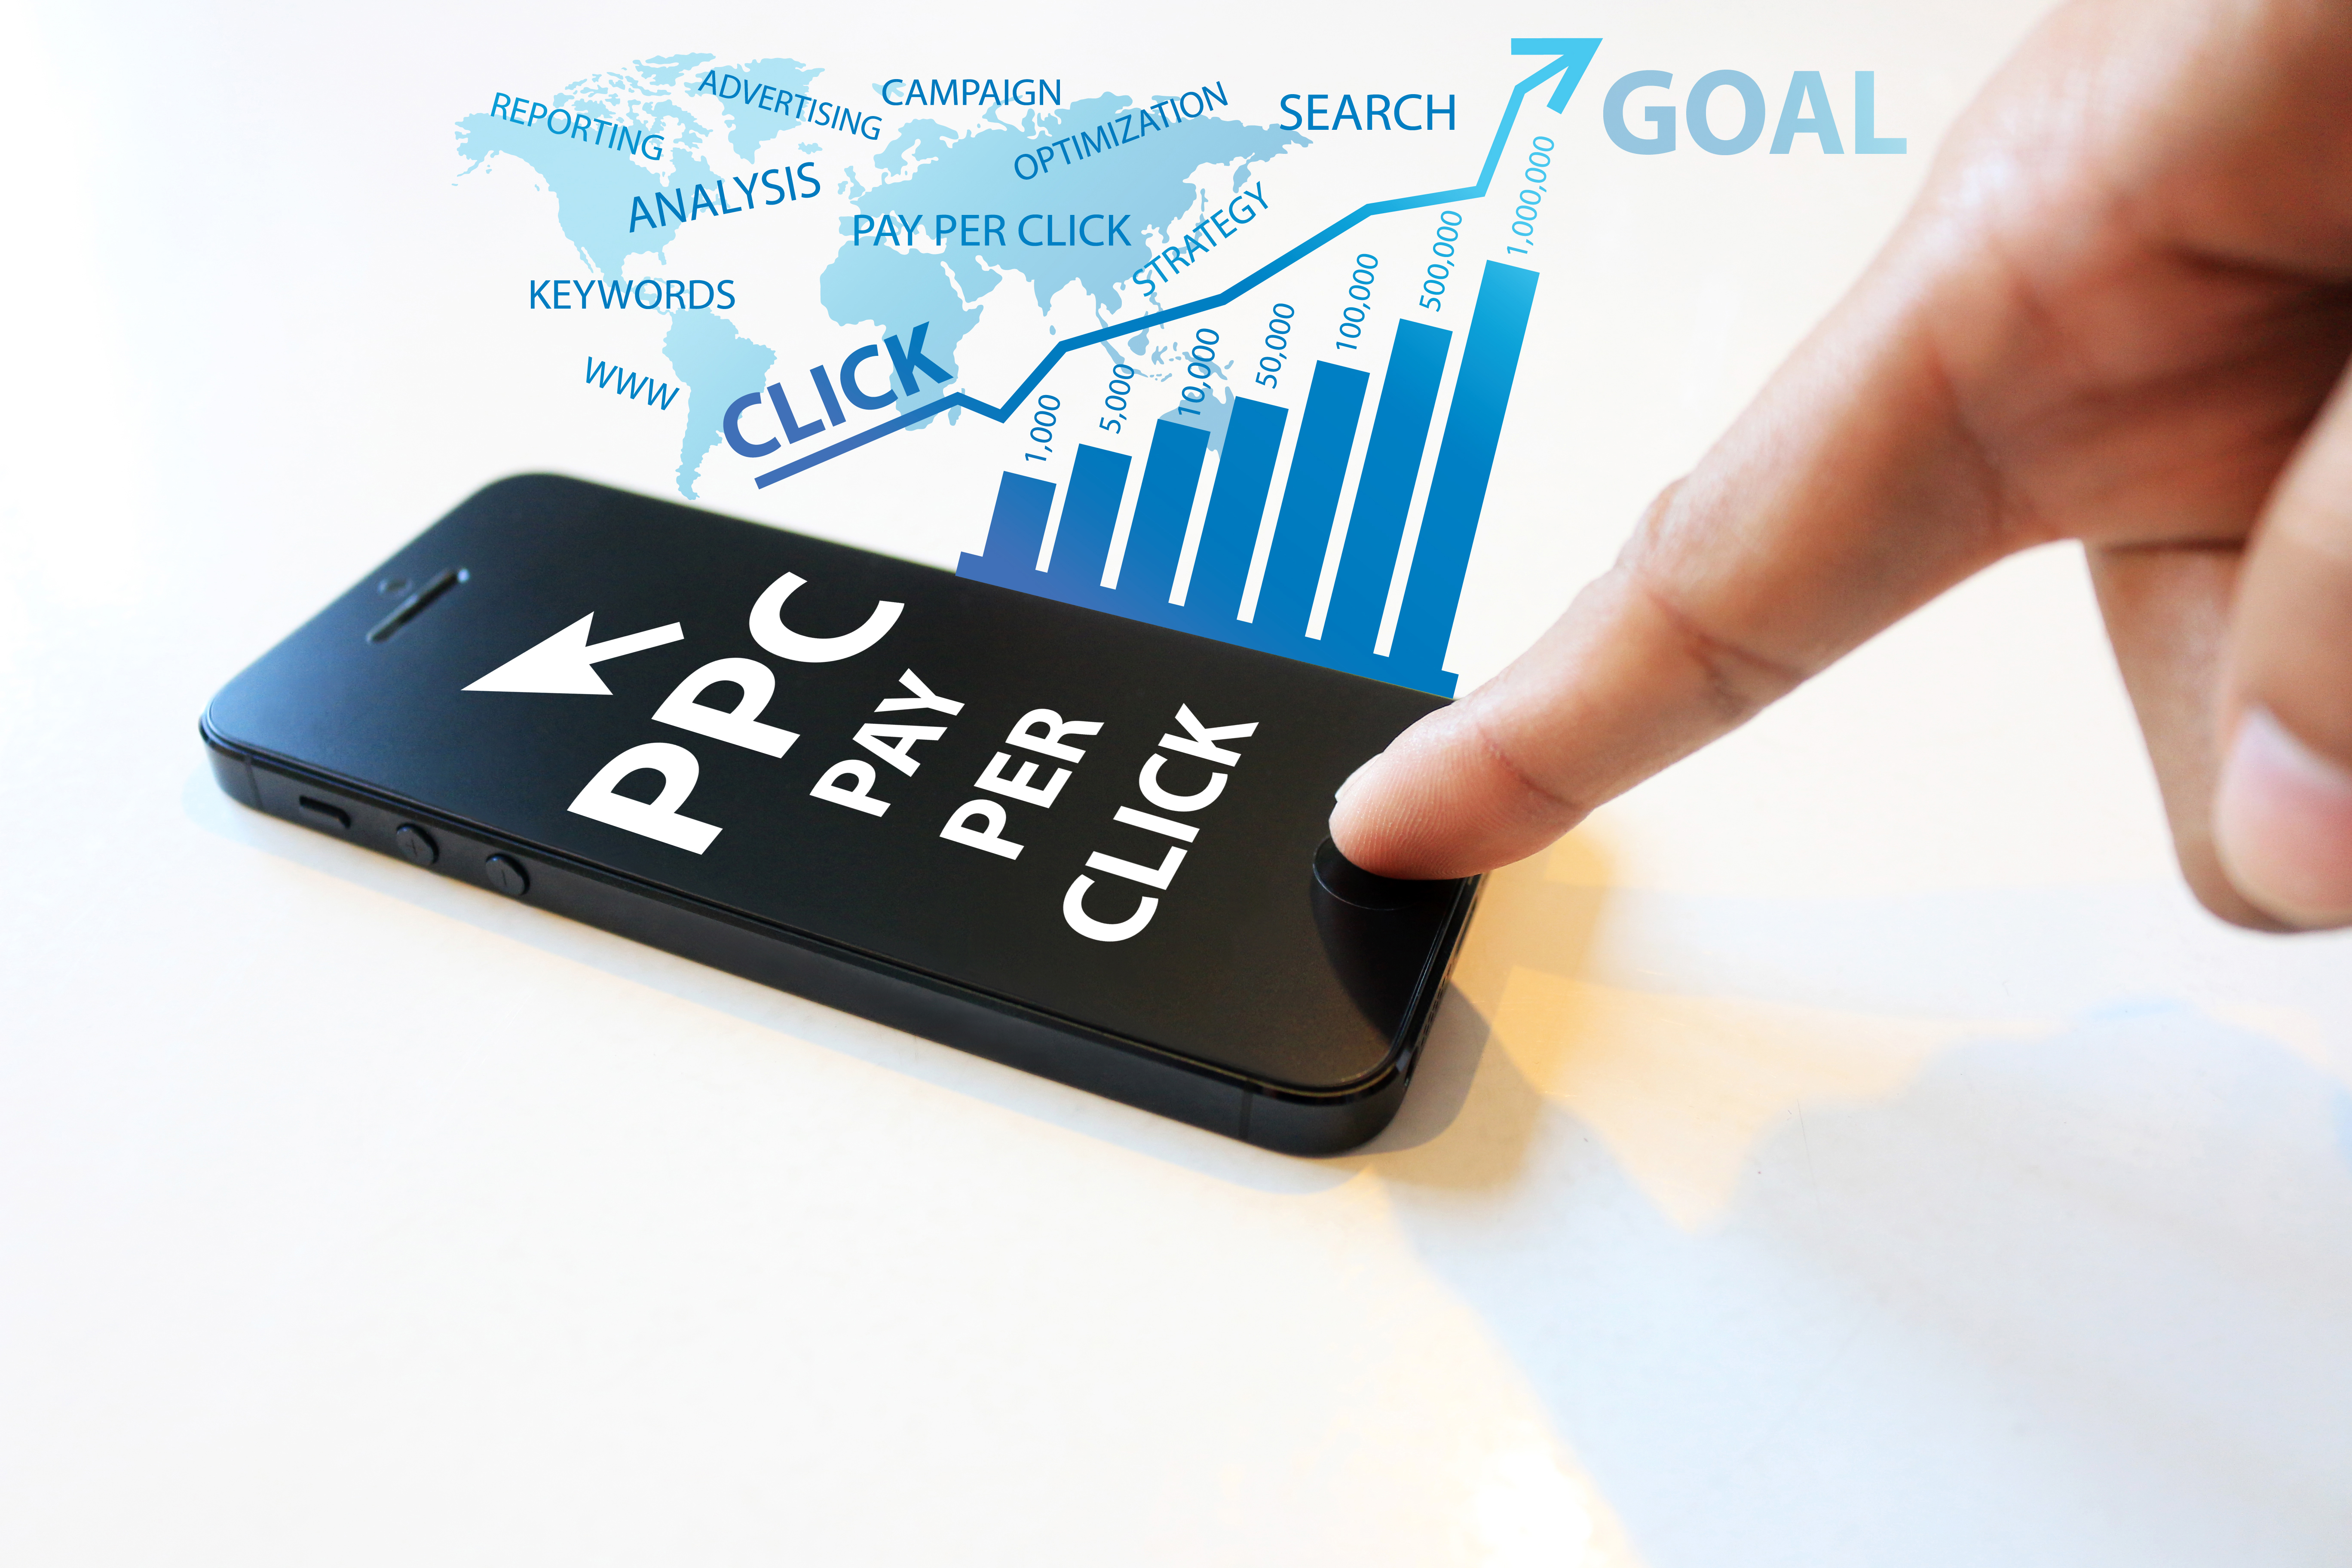 4 Pay-Per-Click Trends for Small Businesses in 2017